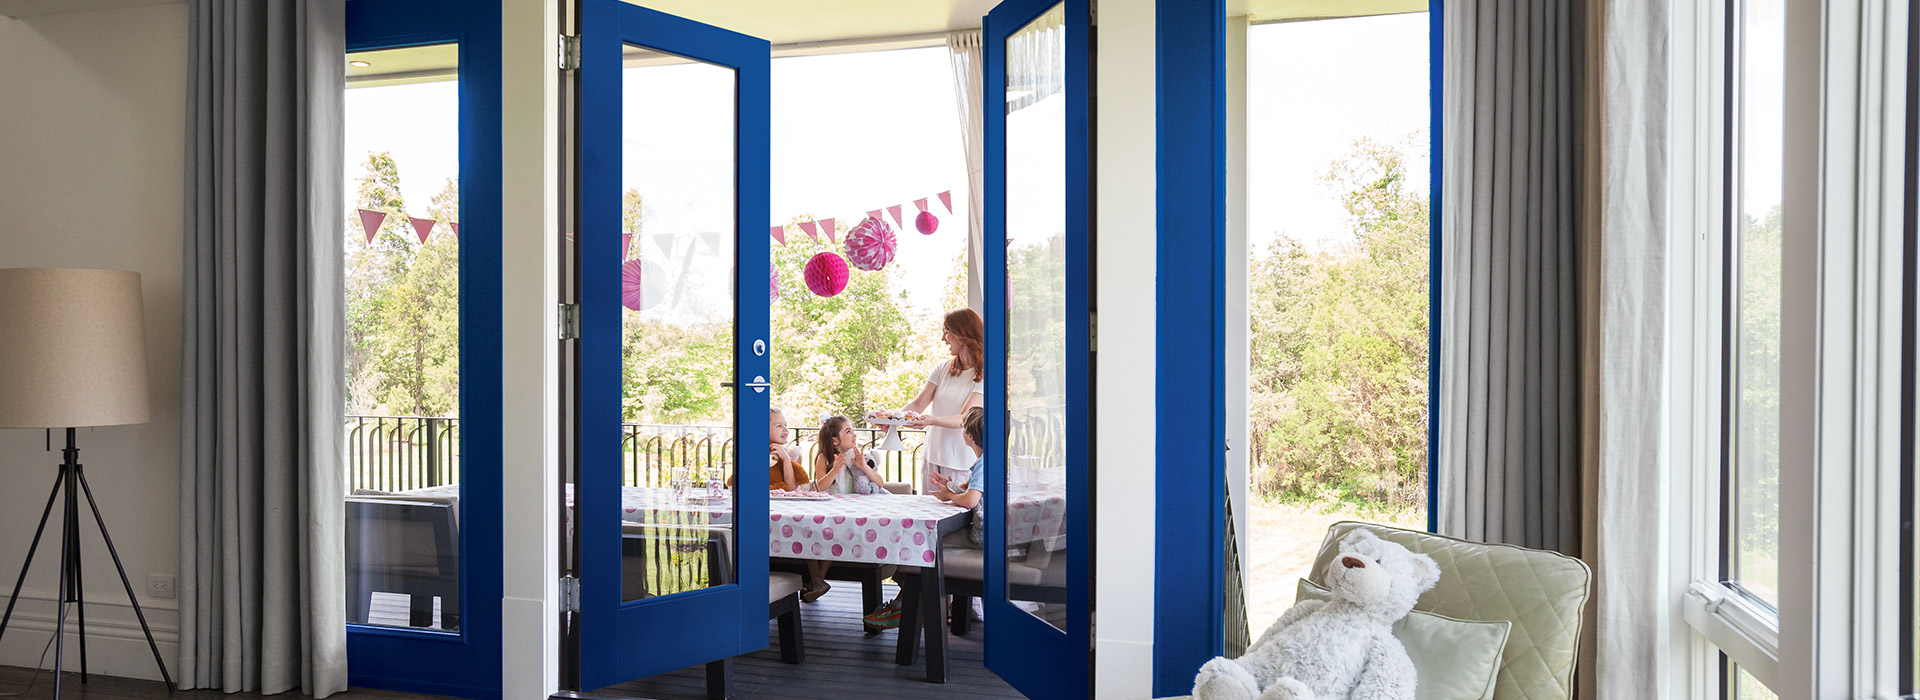 Full lite exterior blue VistaGrande double doors open view of a little girl's party with pink décor